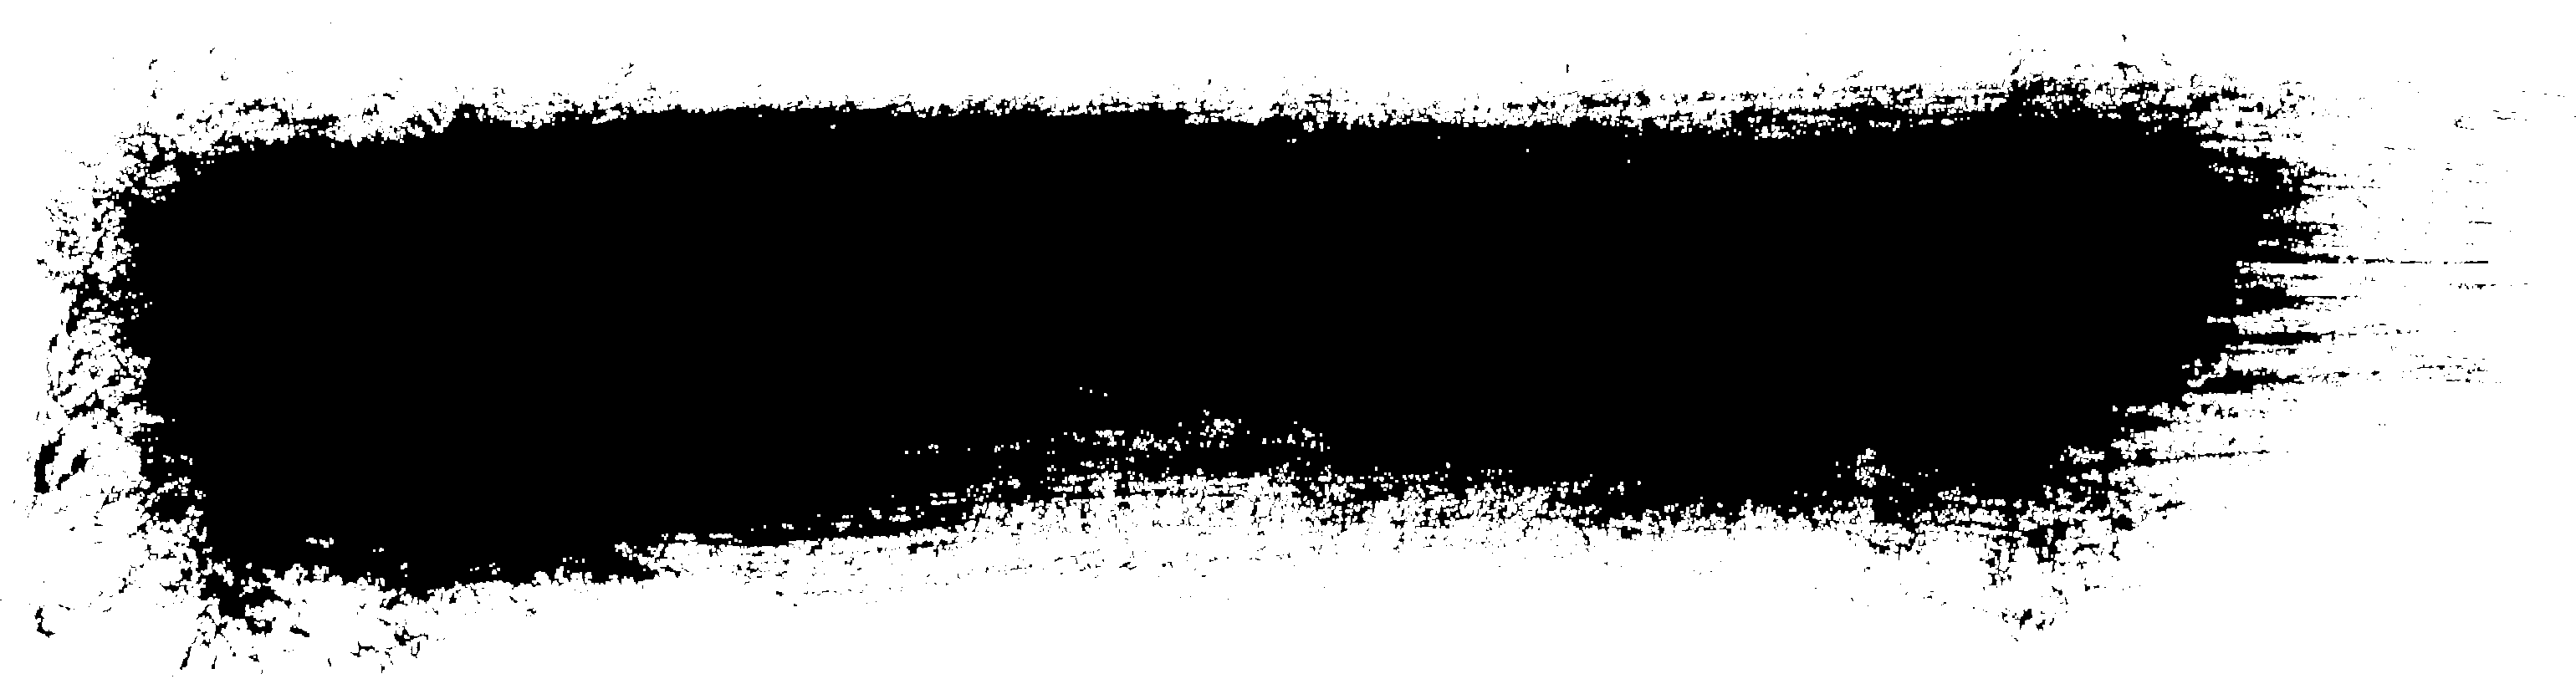 image black and white stock Single Brush Stroke Png